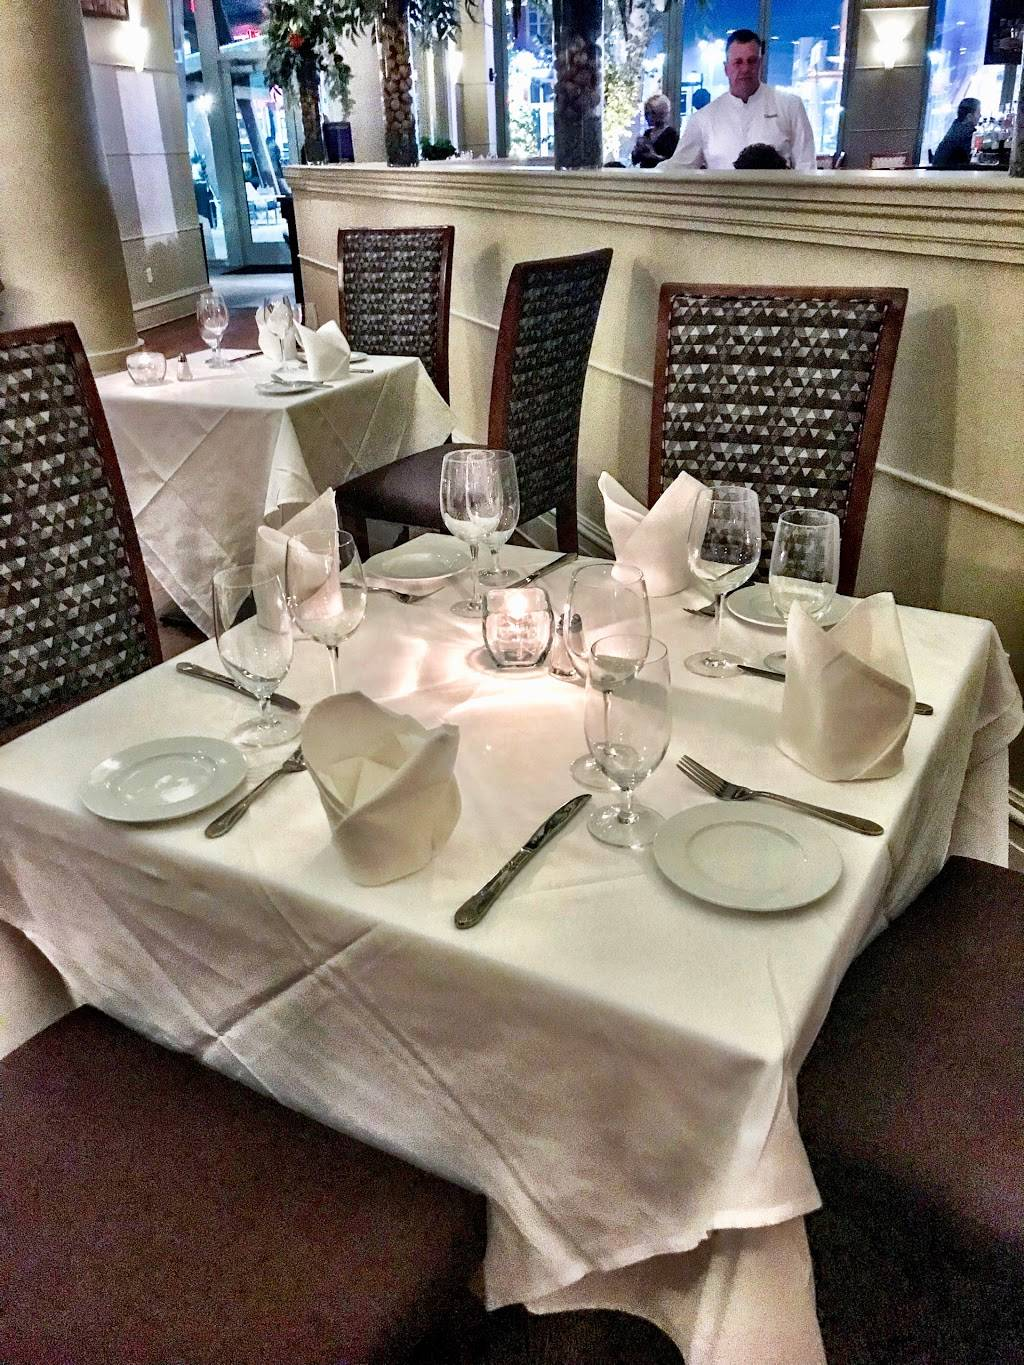 Davios Northern Italian Steakhouse | restaurant | 200 Main Street, King of Prussia, PA 19406, USA | 6103374810 OR +1 610-337-4810